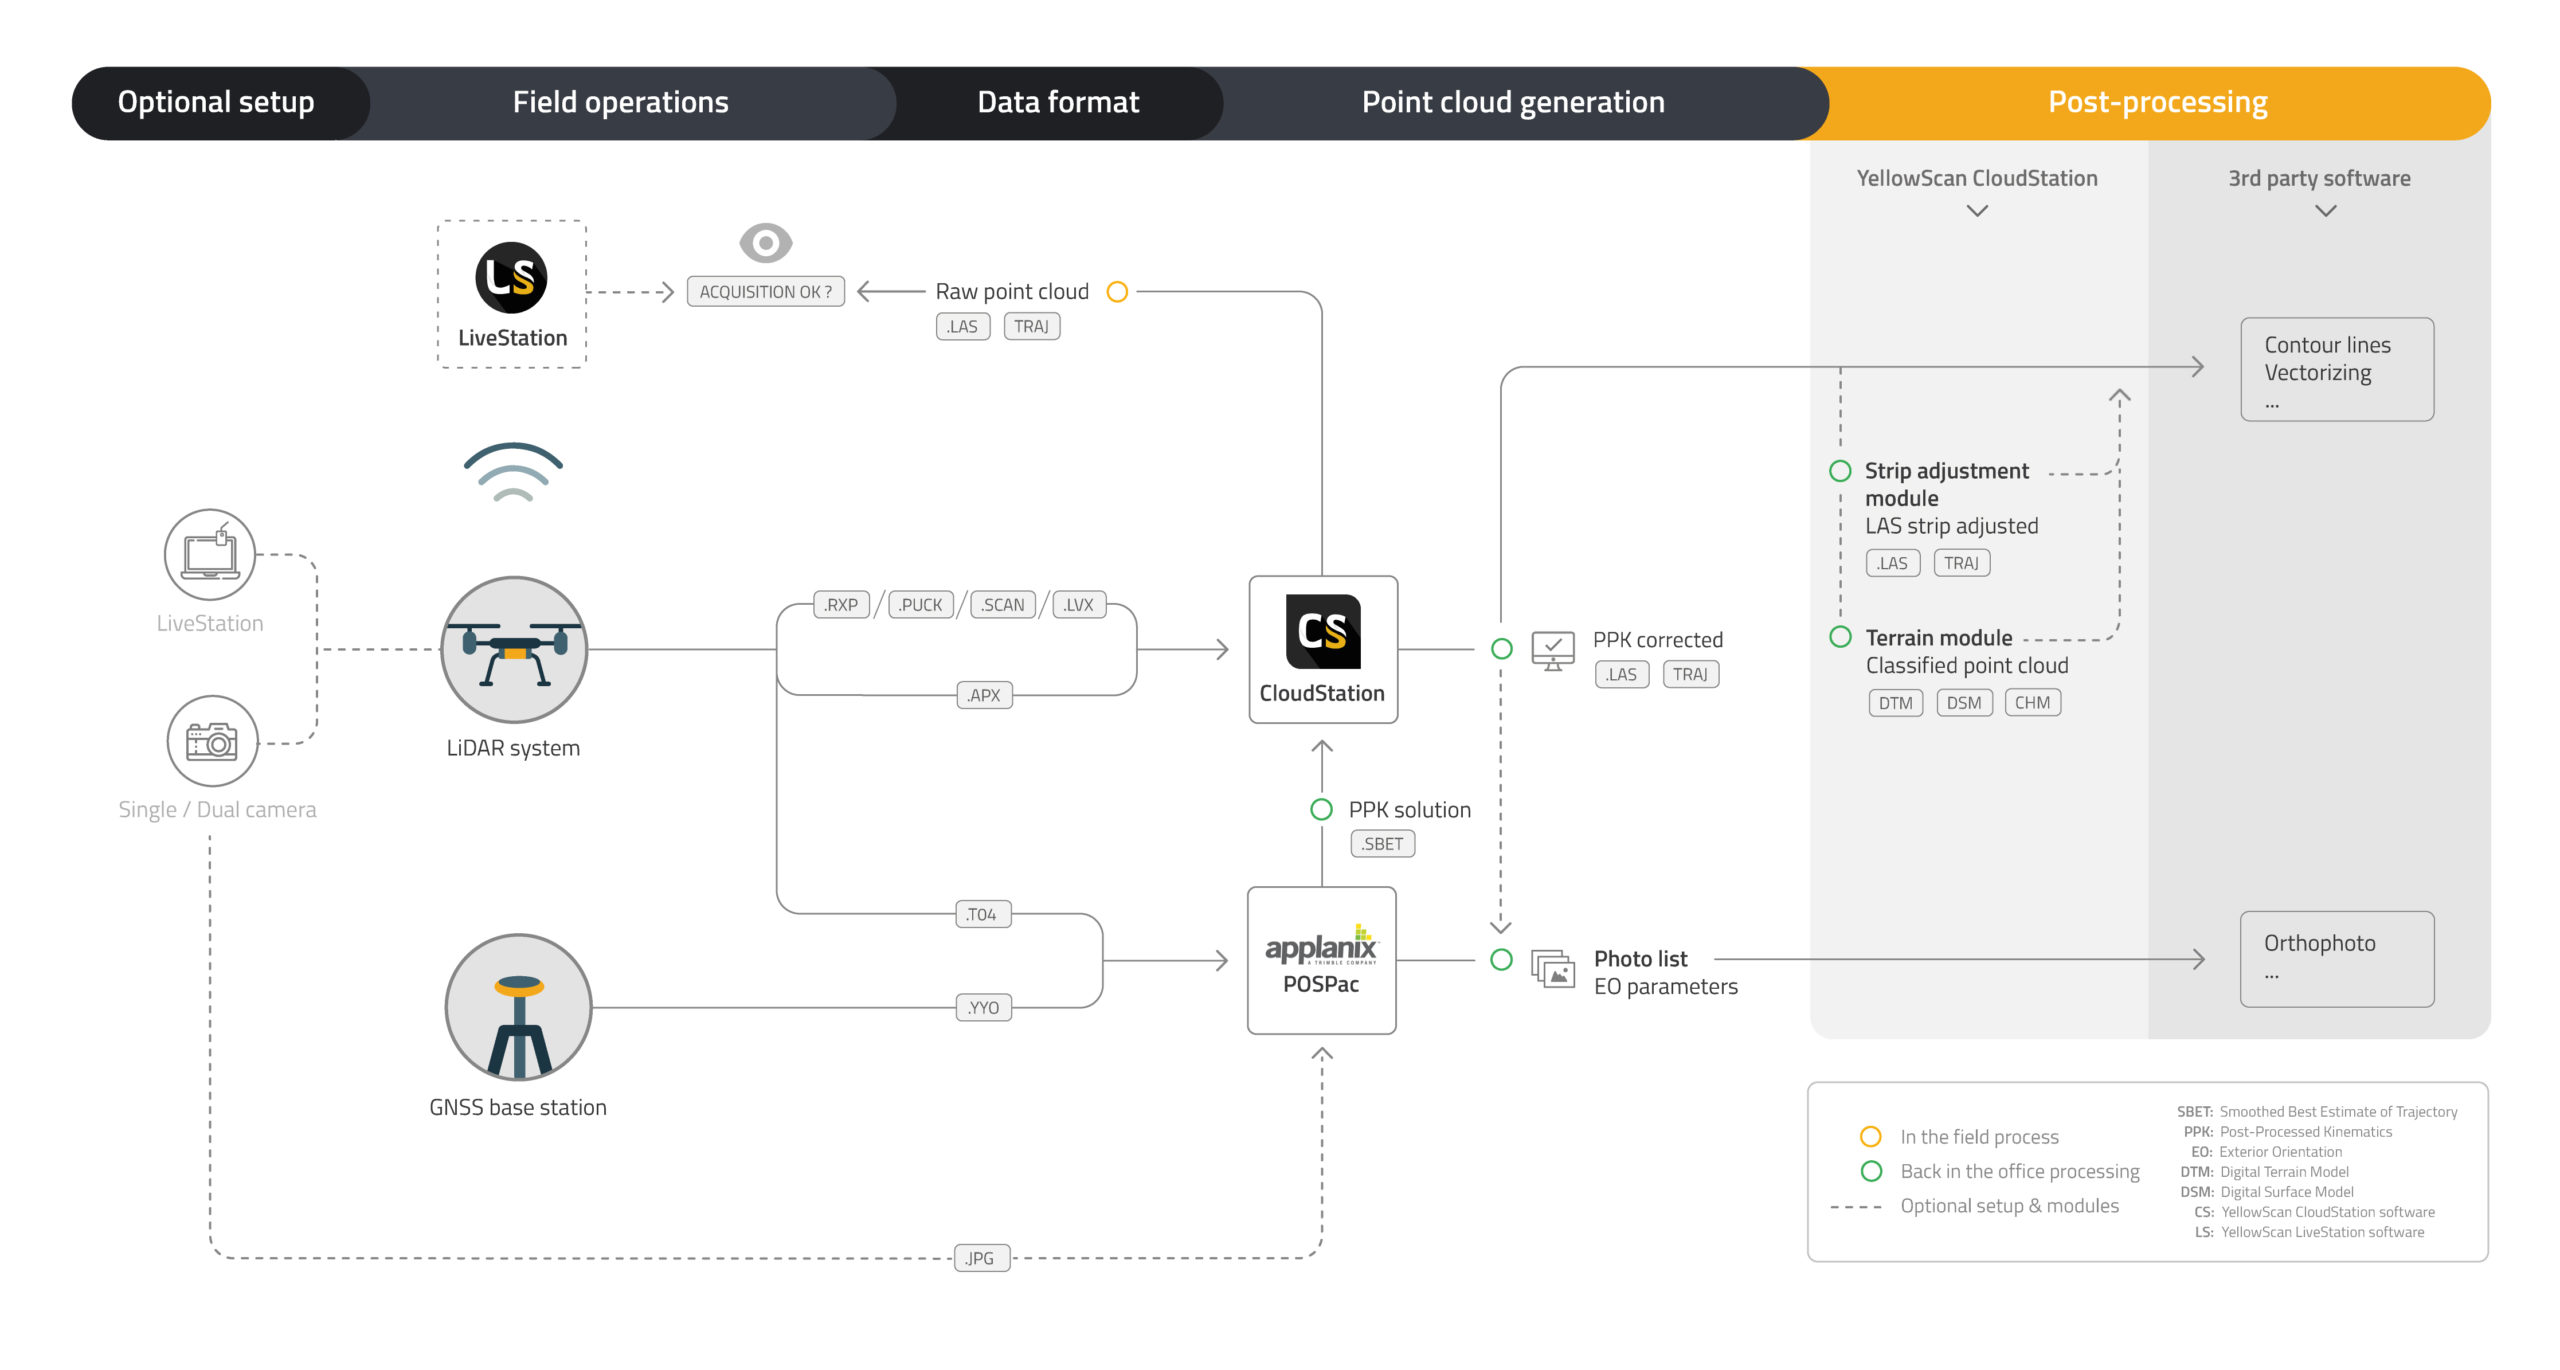 YellowScan workflow